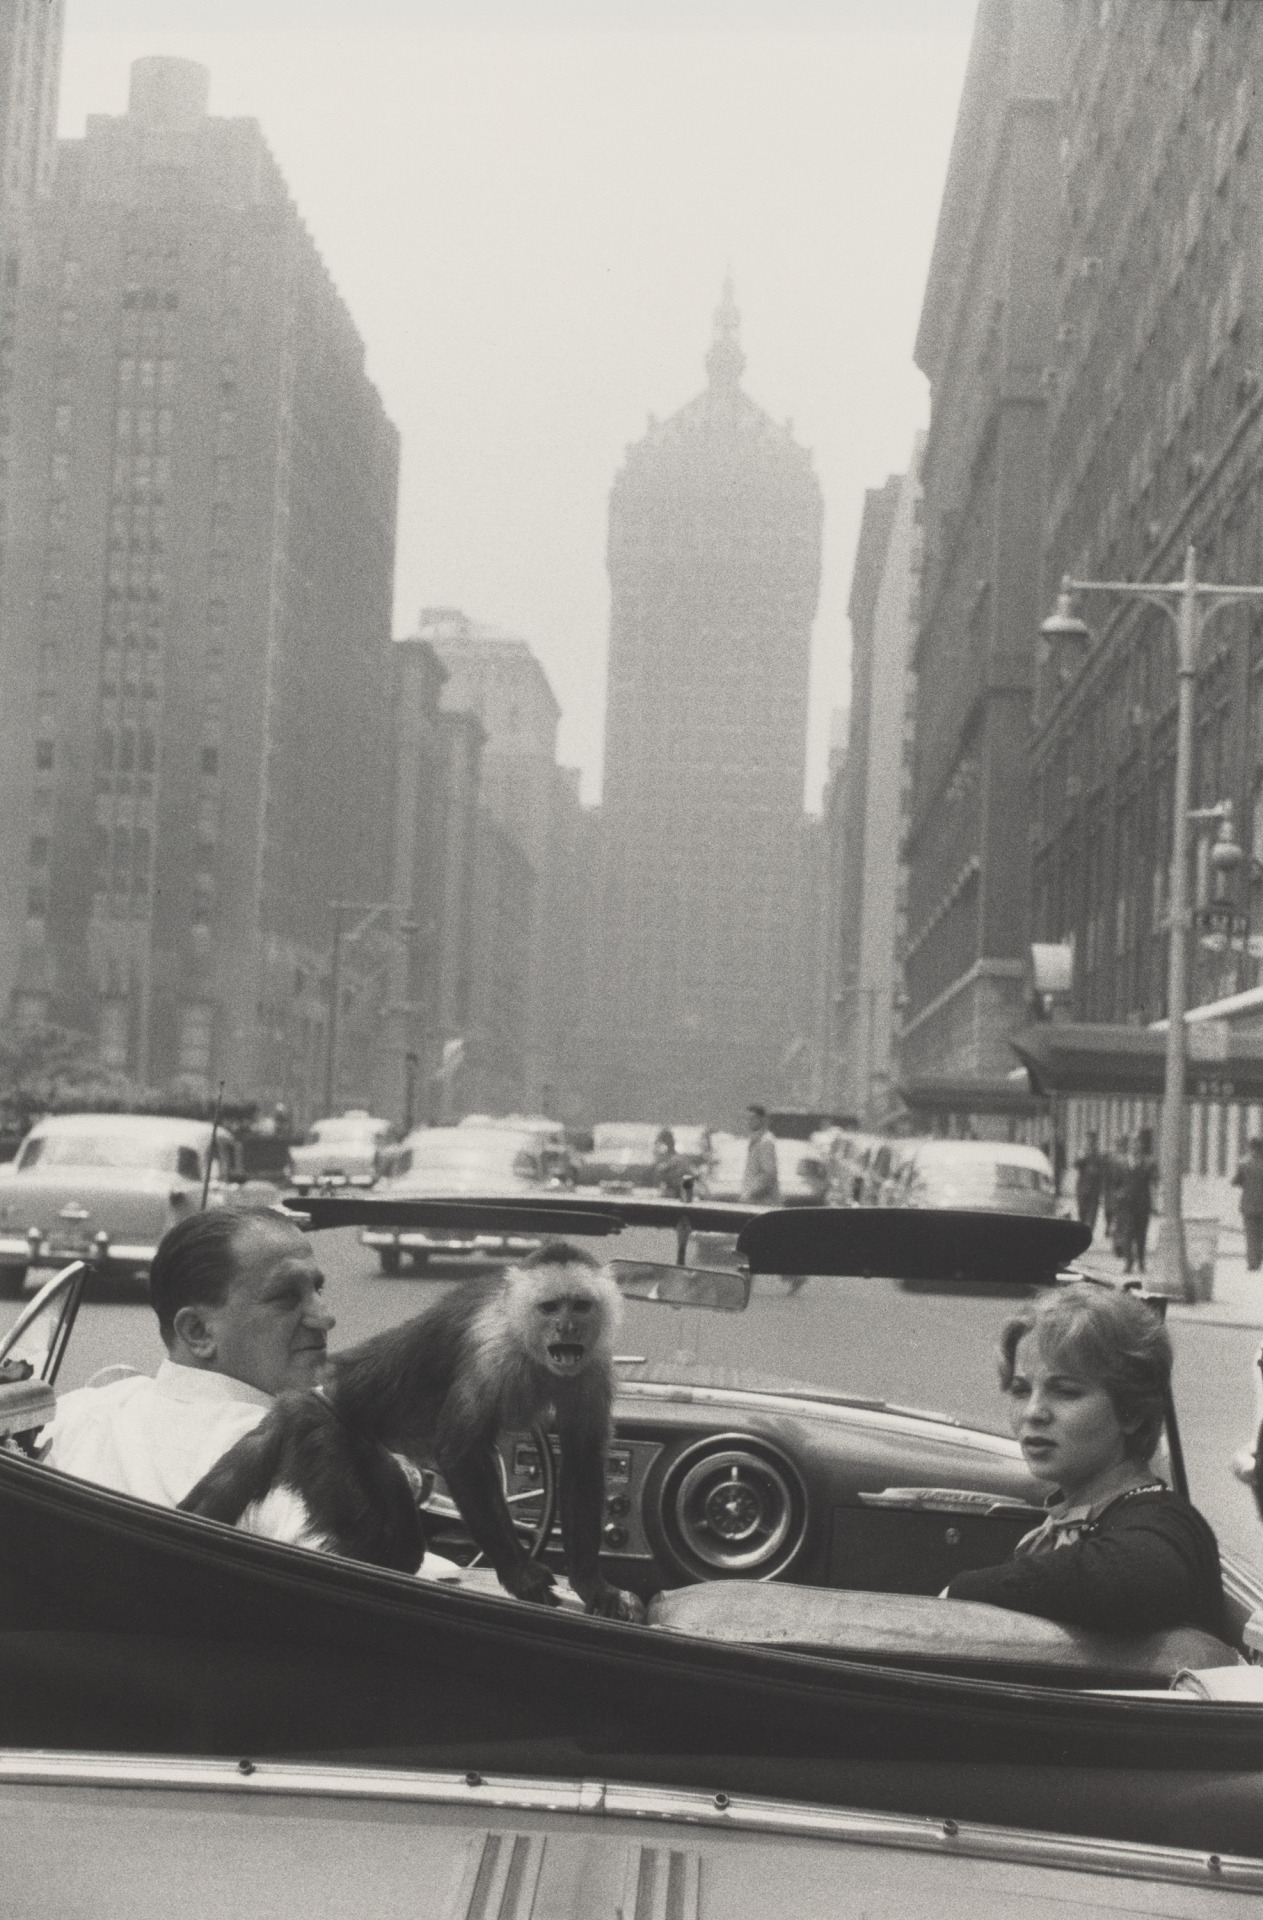 Photograph by Garry Winogrand / © The Estate of Garry Winogrand, courtesy Fraenkel Gallery, San Francisco A new exhibition at SFMOMA presents a retrospective look at Garry Winogrand's most iconic and rare photographs. See a selection of the work on LightBox here.